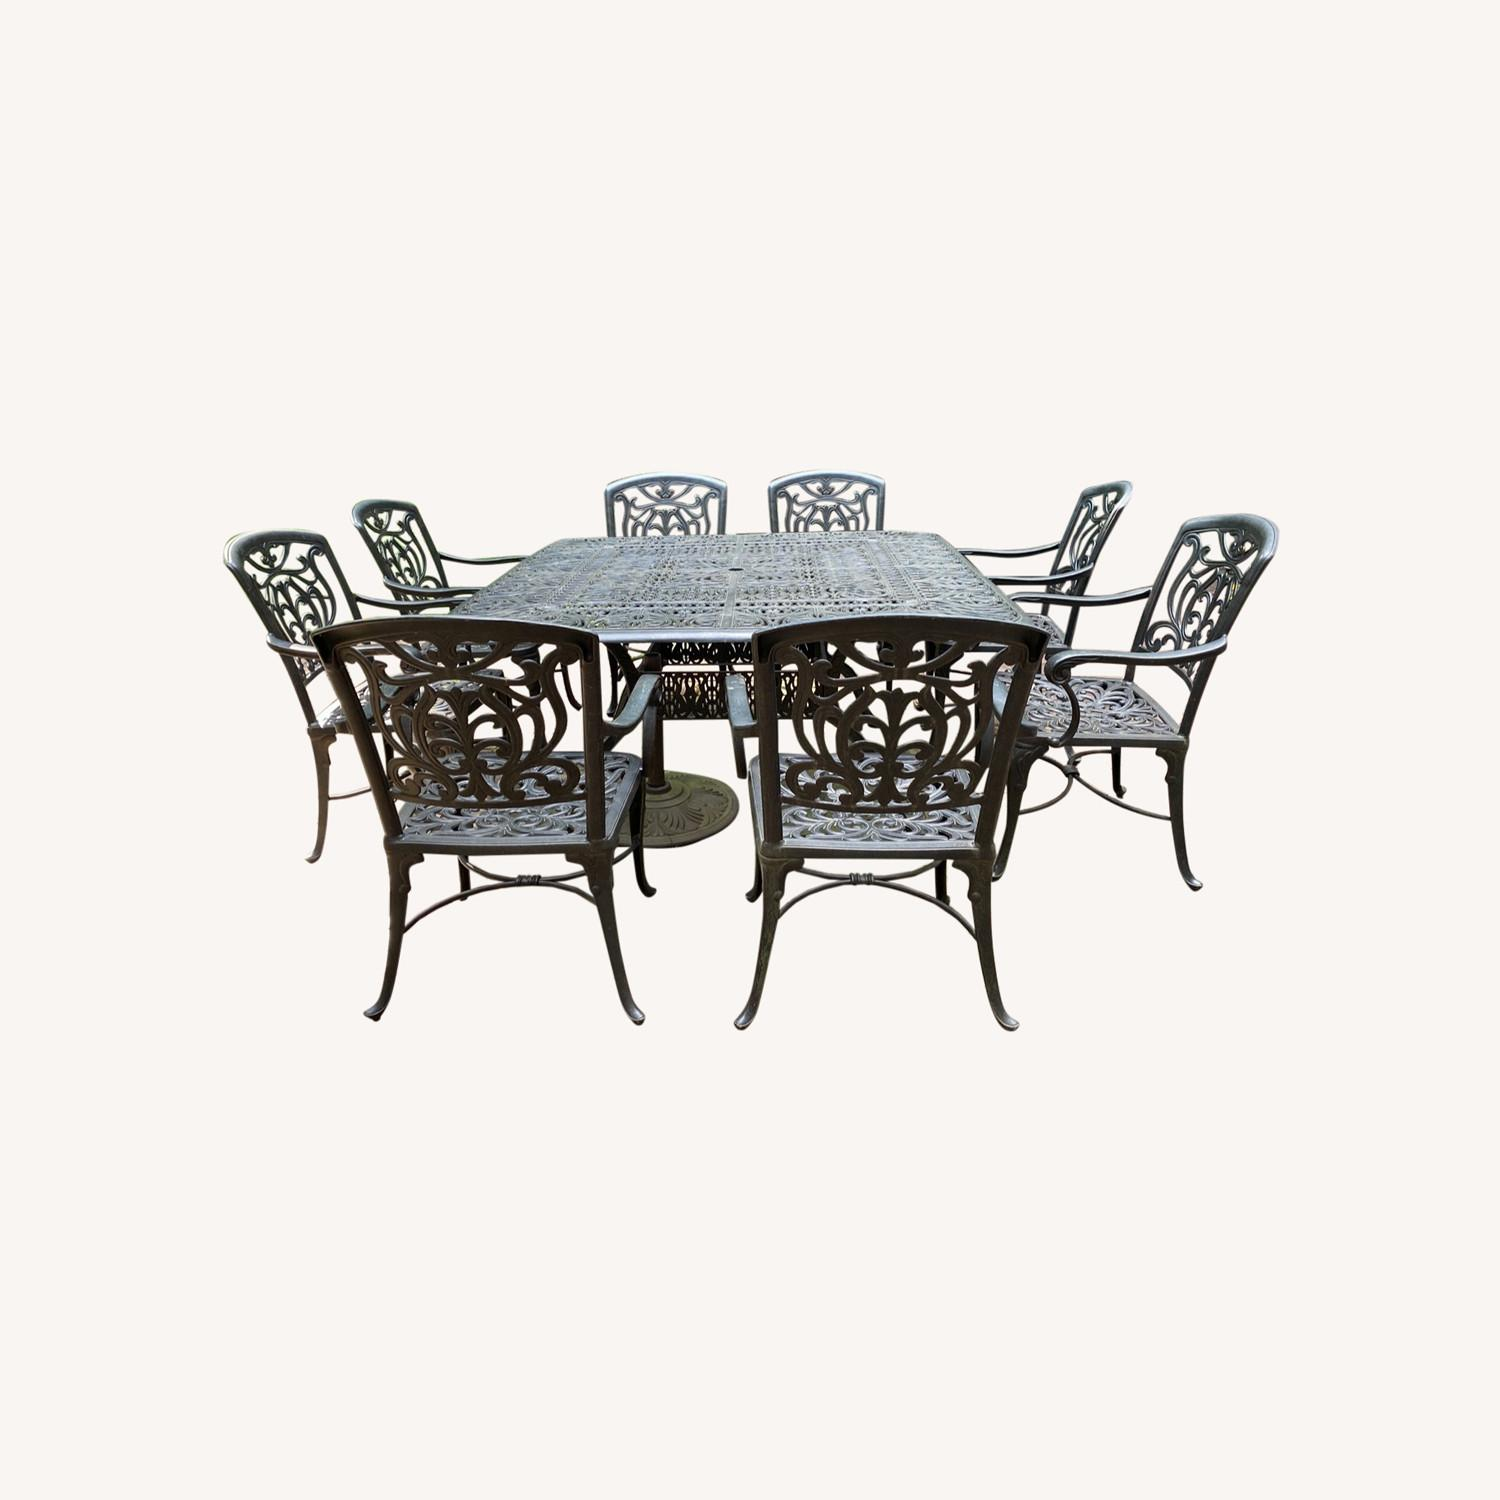 Fortunoff Outdoor Dining Set with 8 Chairs - image-0